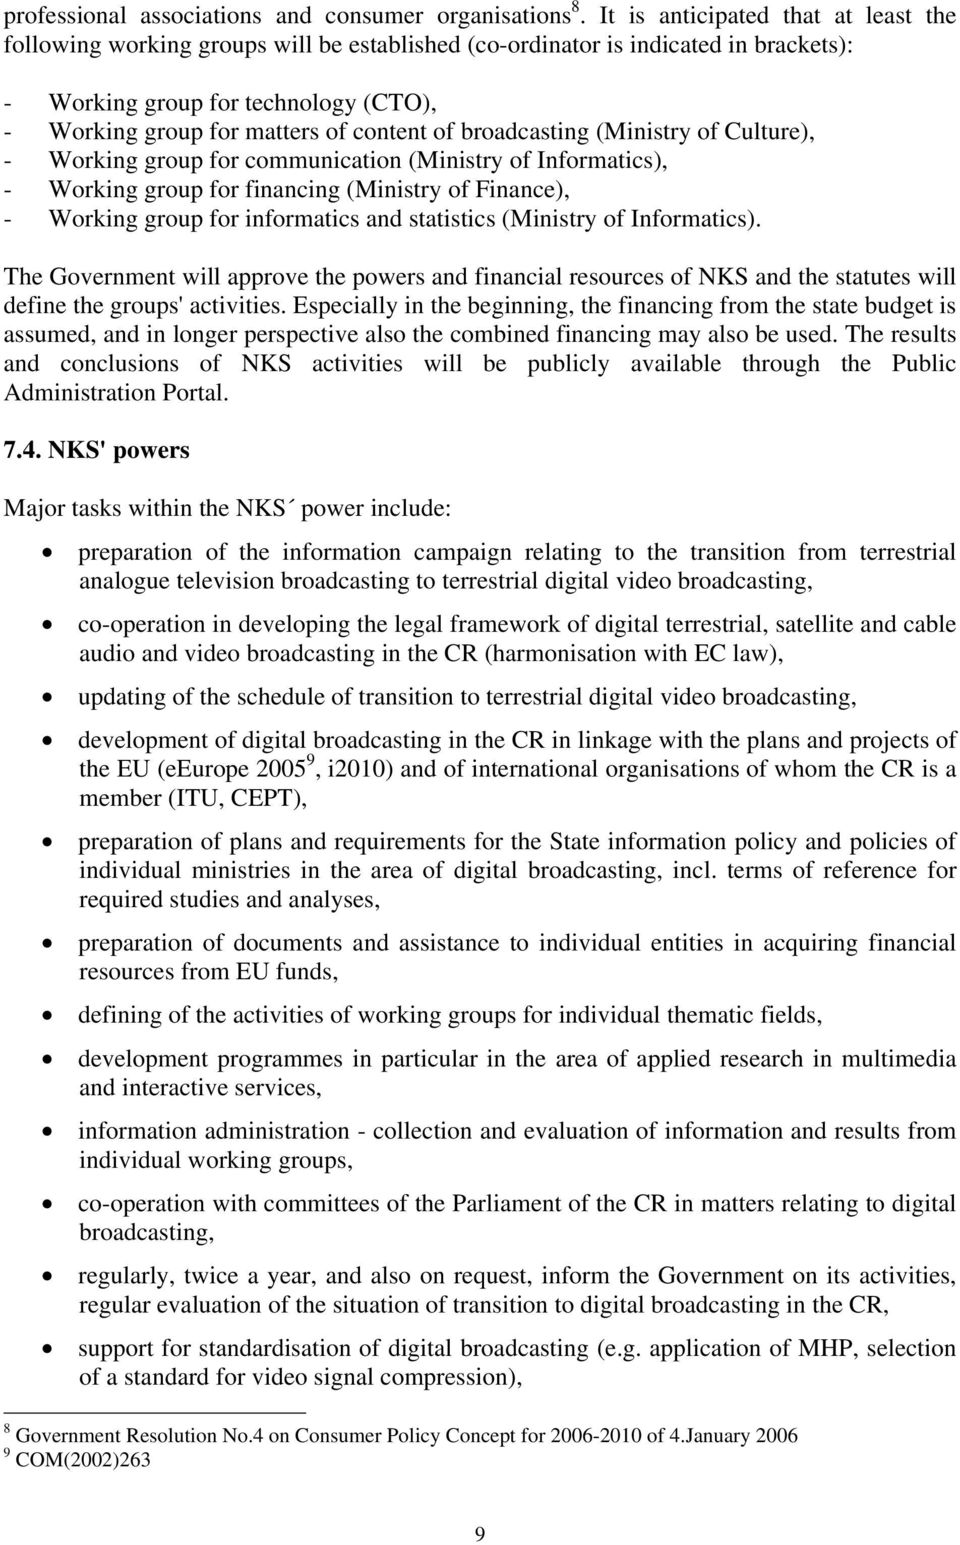 of broadcasting (Ministry of Culture), - Working group for communication (Ministry of Informatics), - Working group for financing (Ministry of Finance), - Working group for informatics and statistics